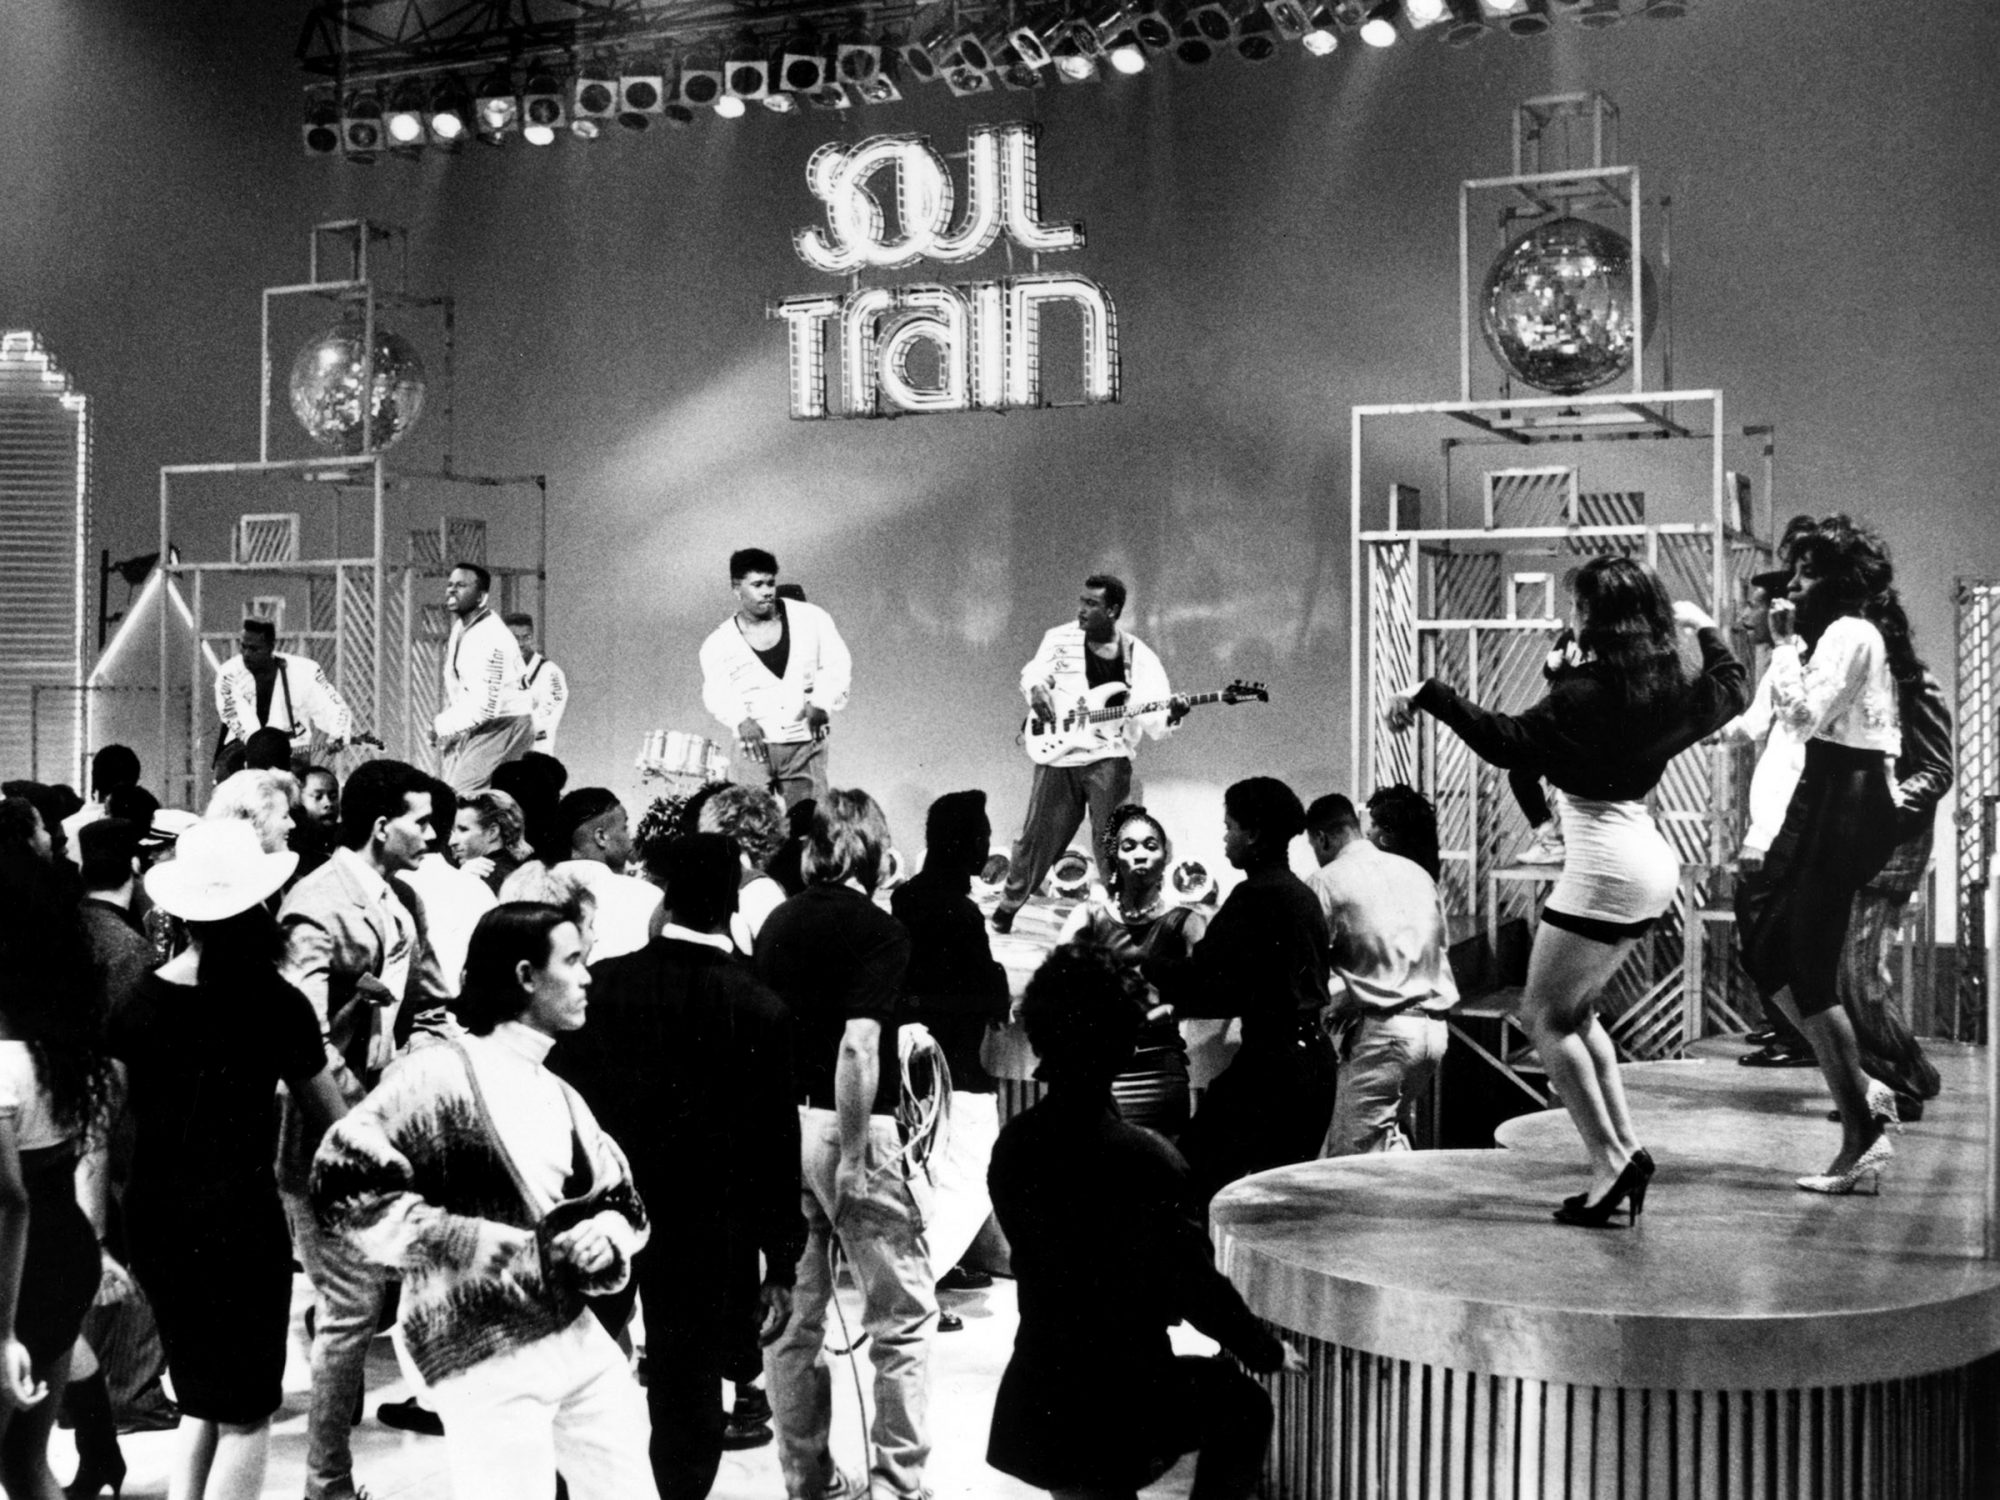 SOUL TRAIN, Full Force performs, early 1980s, 1971-